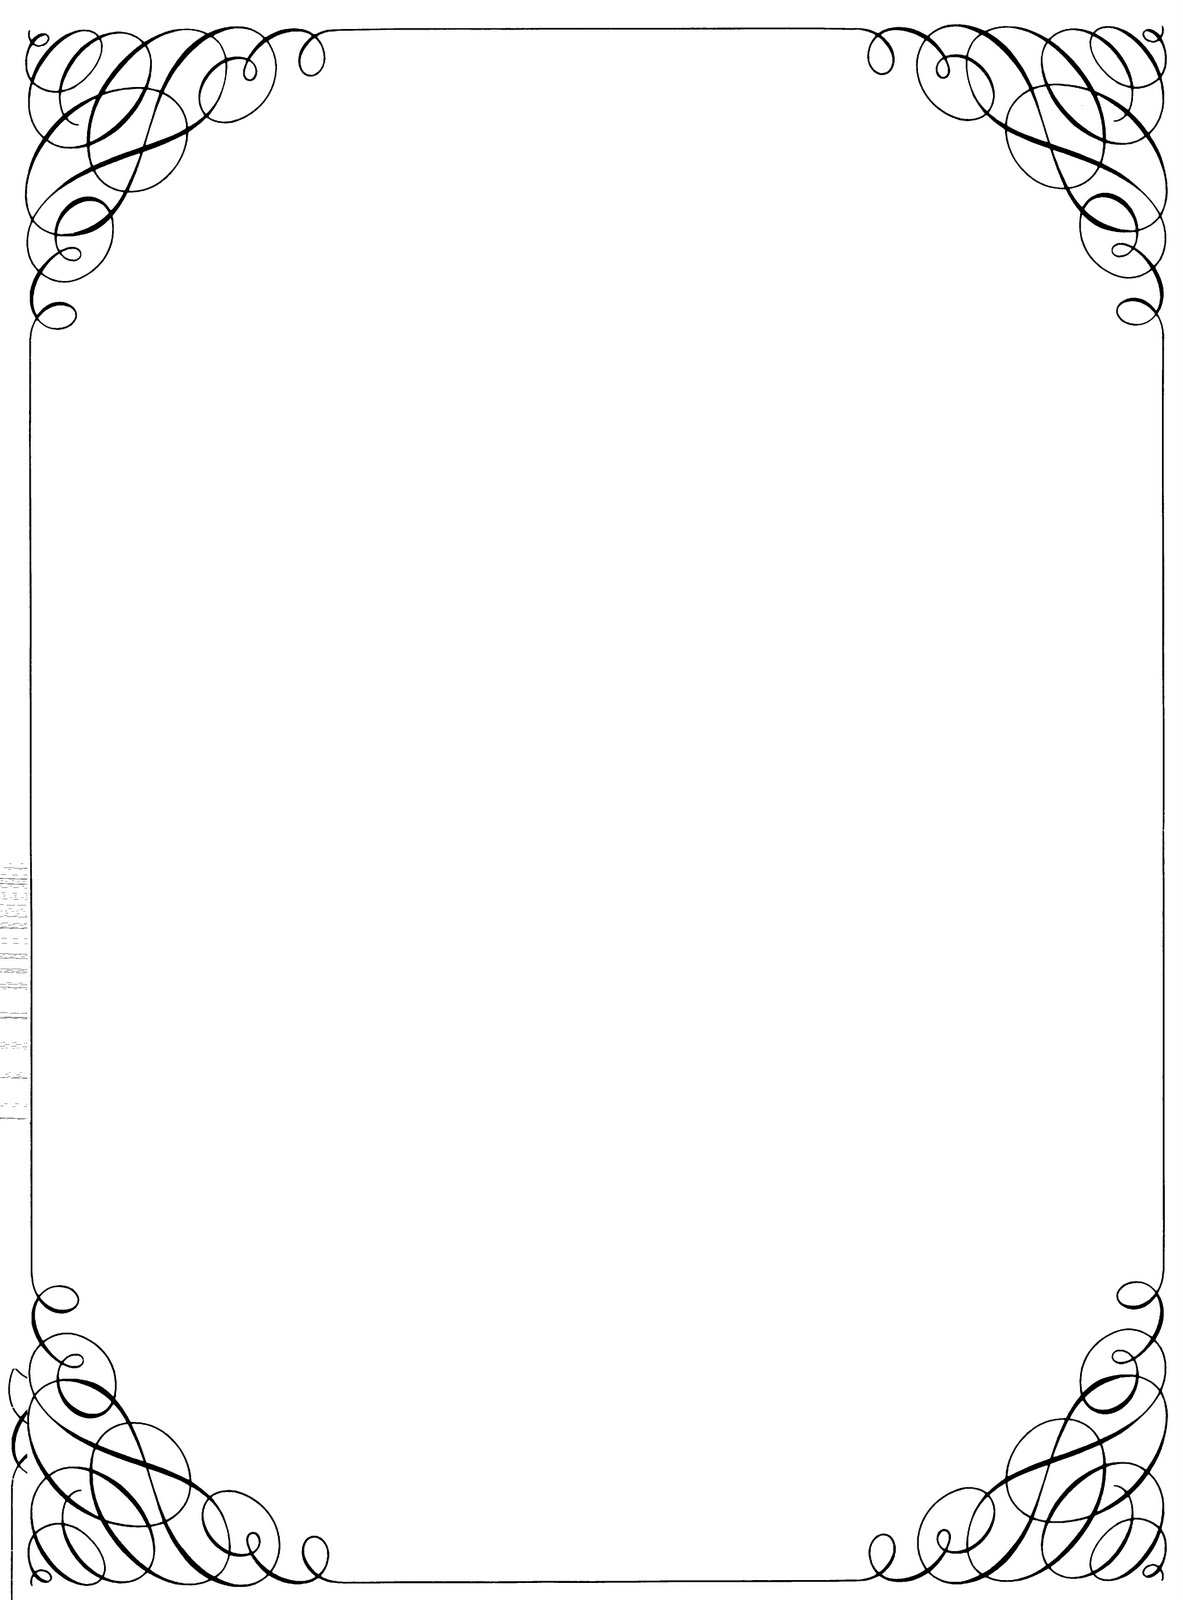 Free borders and frames clip art - ClipartFest